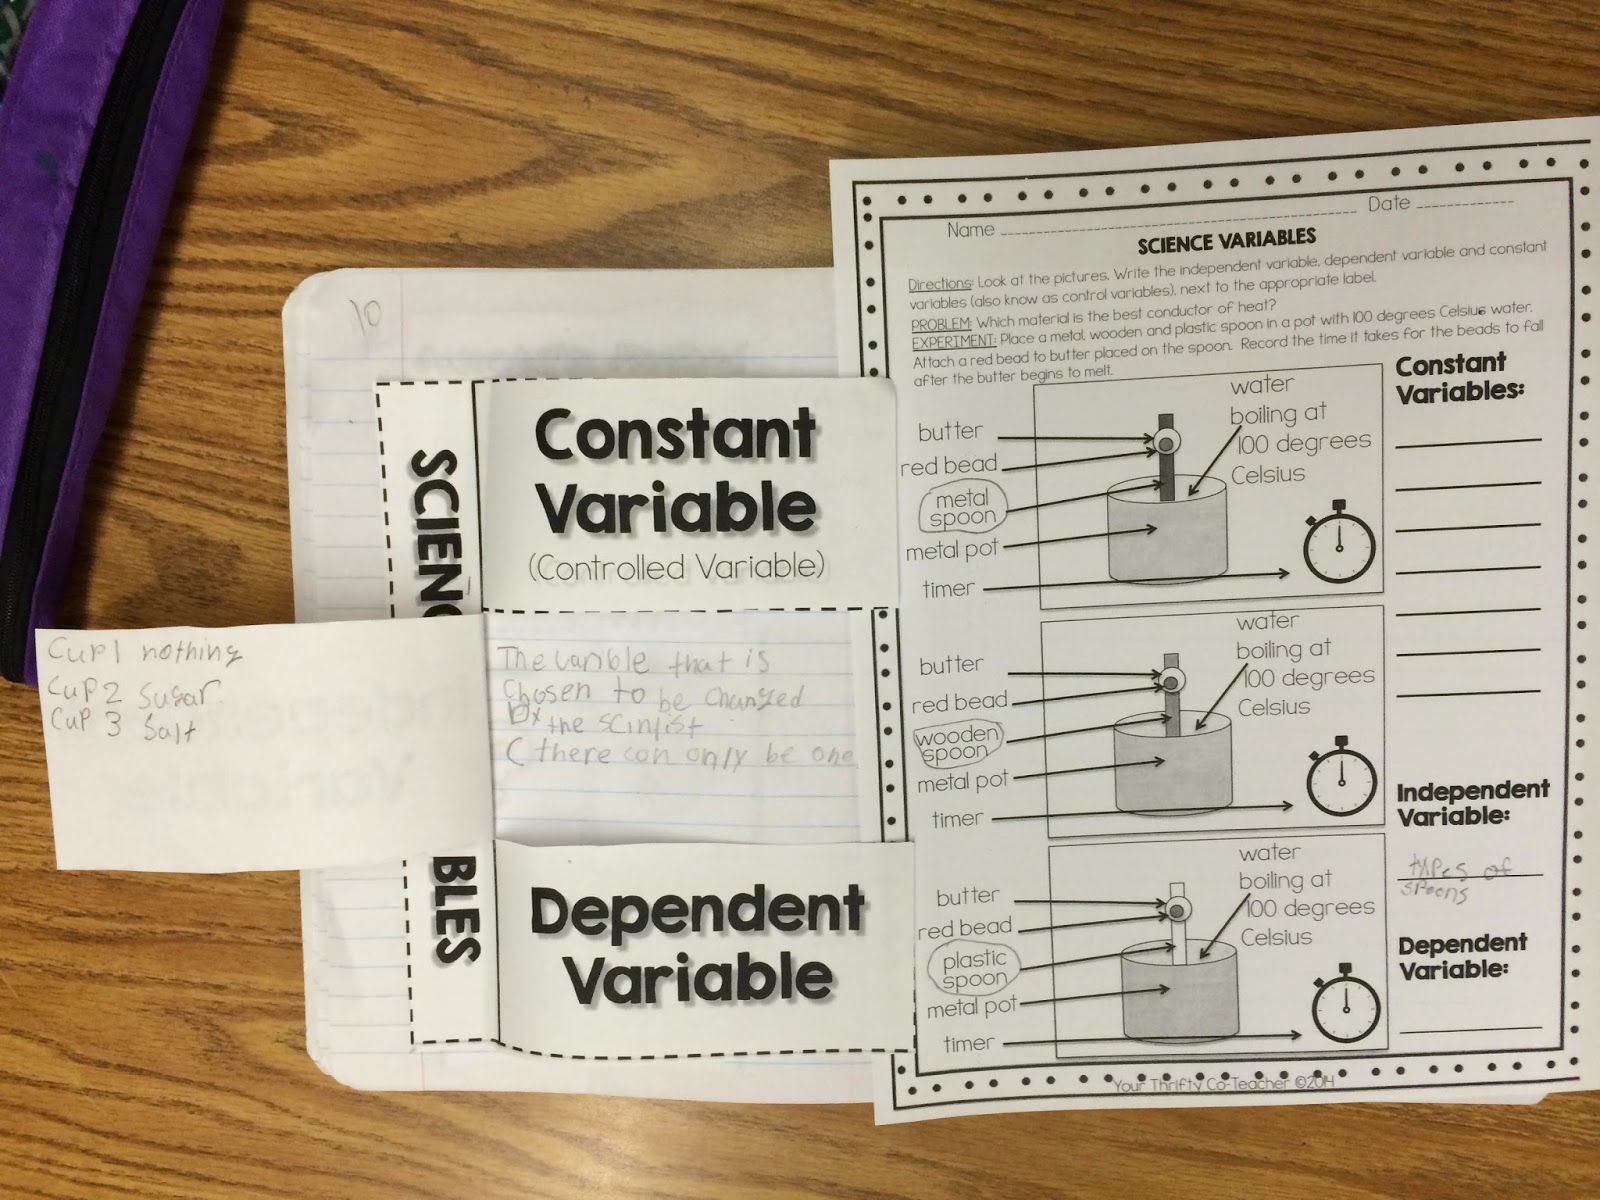 Scientific Variables Constant Independent And Dependent